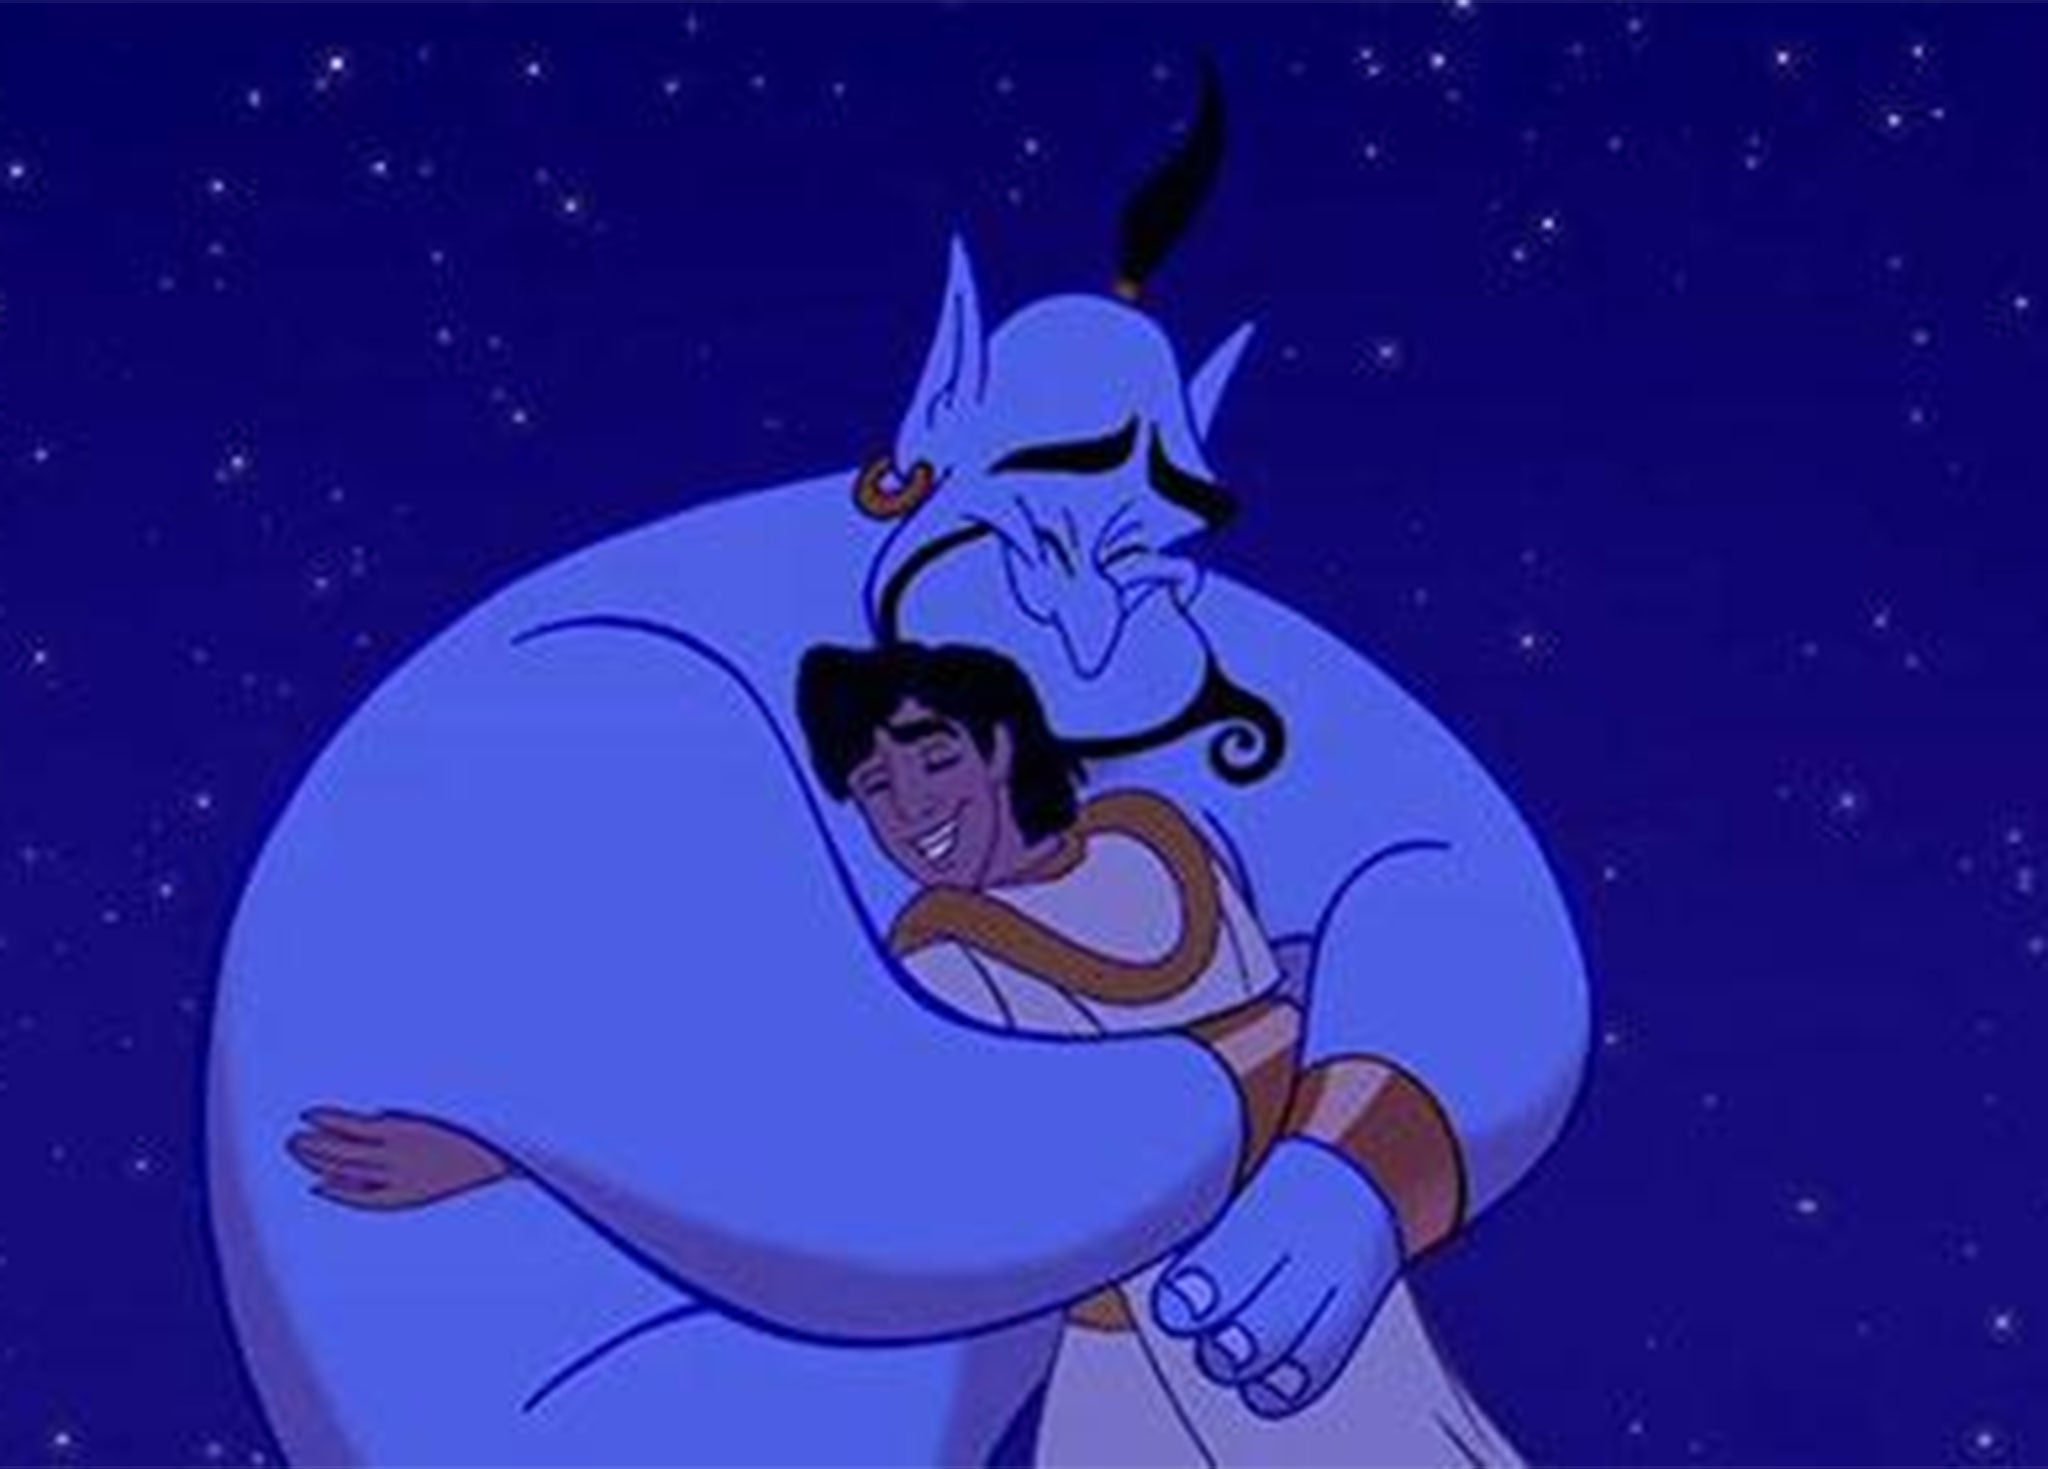 aladdin 2 not possible for disney as robin williams